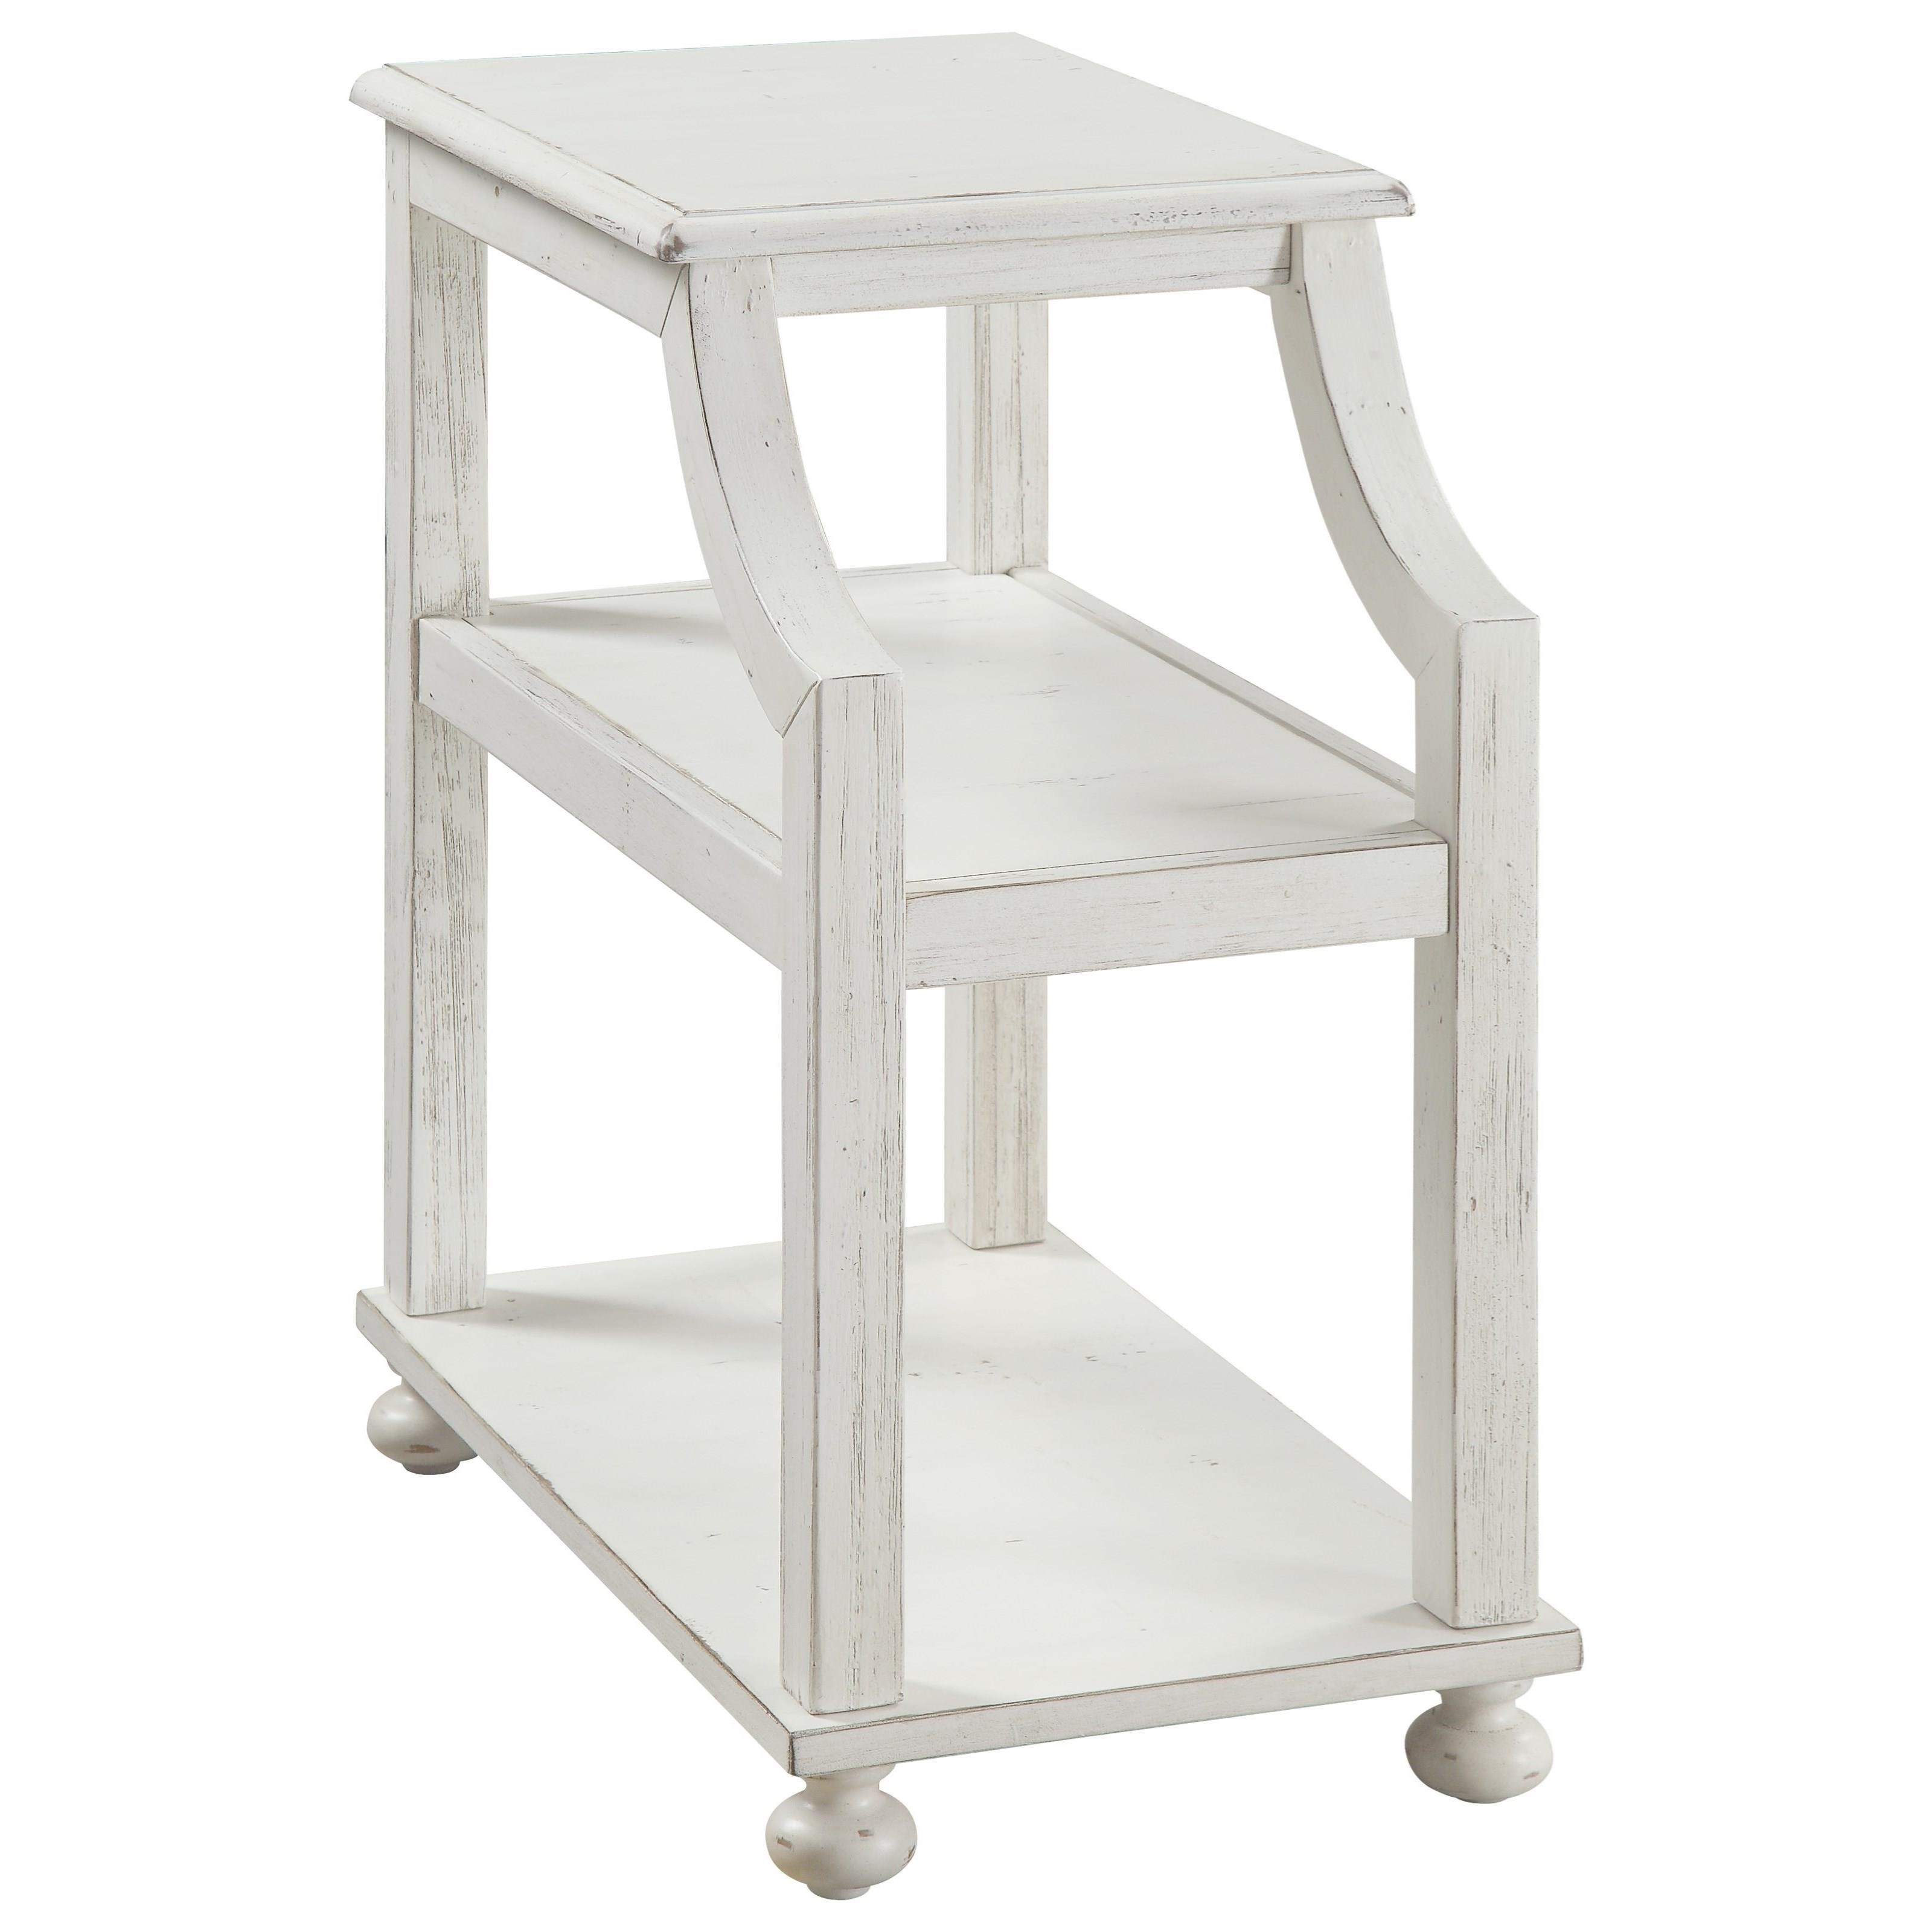 Coast to Coast Accents Chairside Accent Table by Coast to Coast Imports at Bullard Furniture